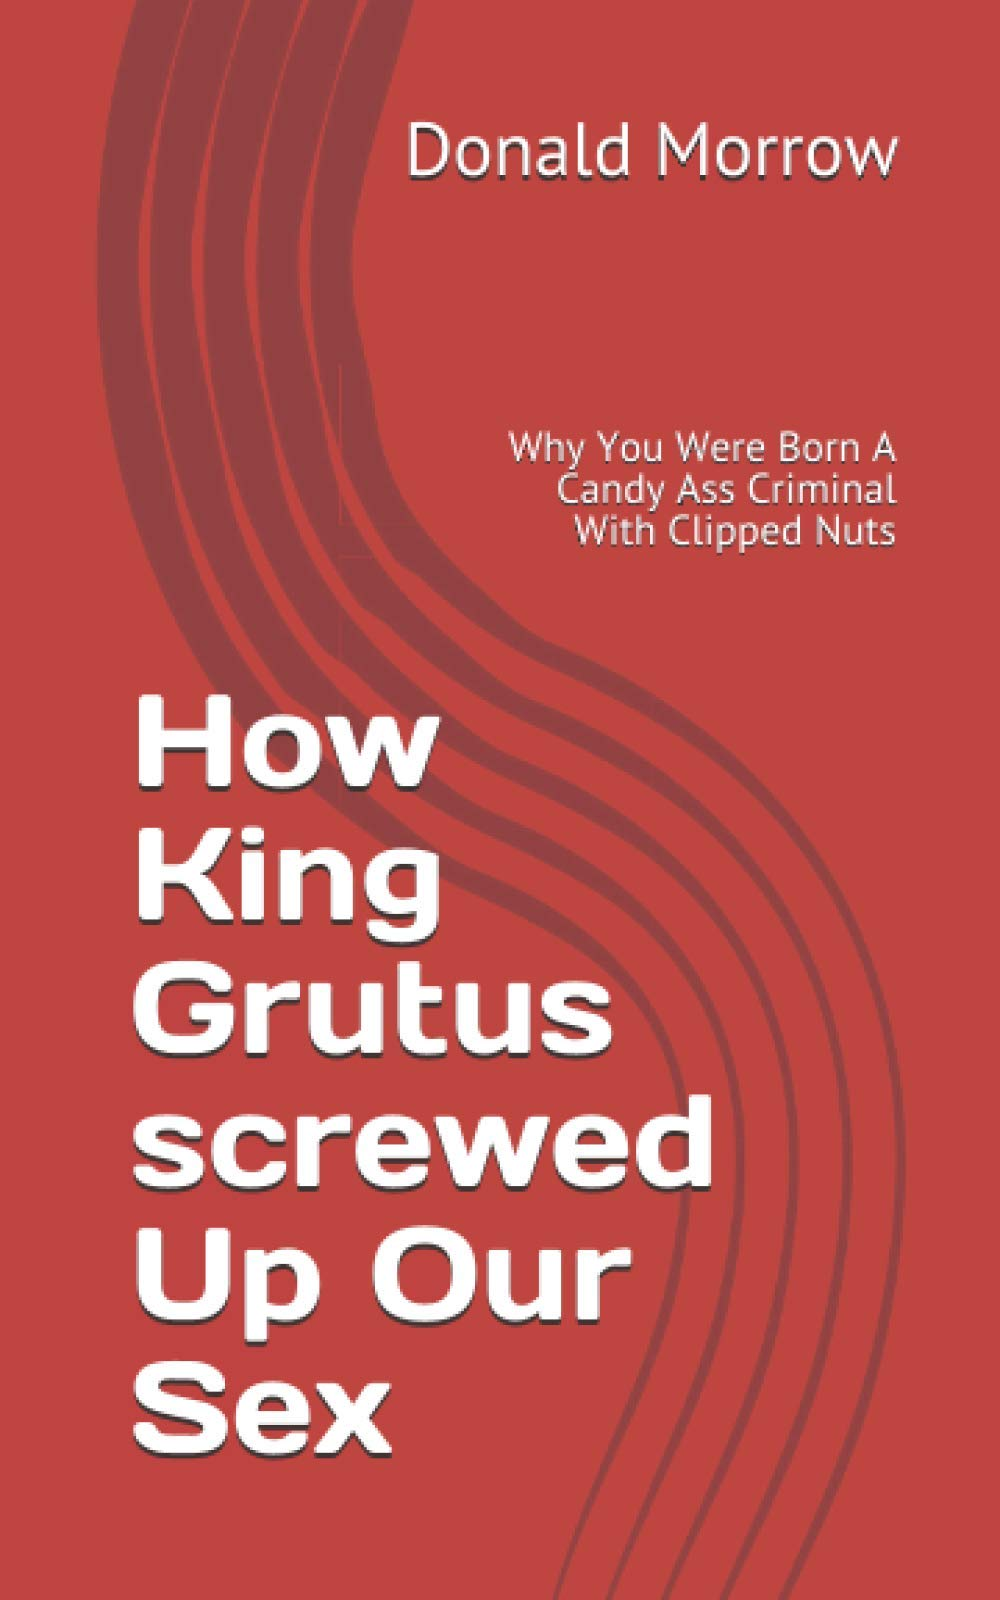 How King Grutus screwed Up Our Sex: Why You Were Born A Candy Ass Criminal With Clipped Nuts